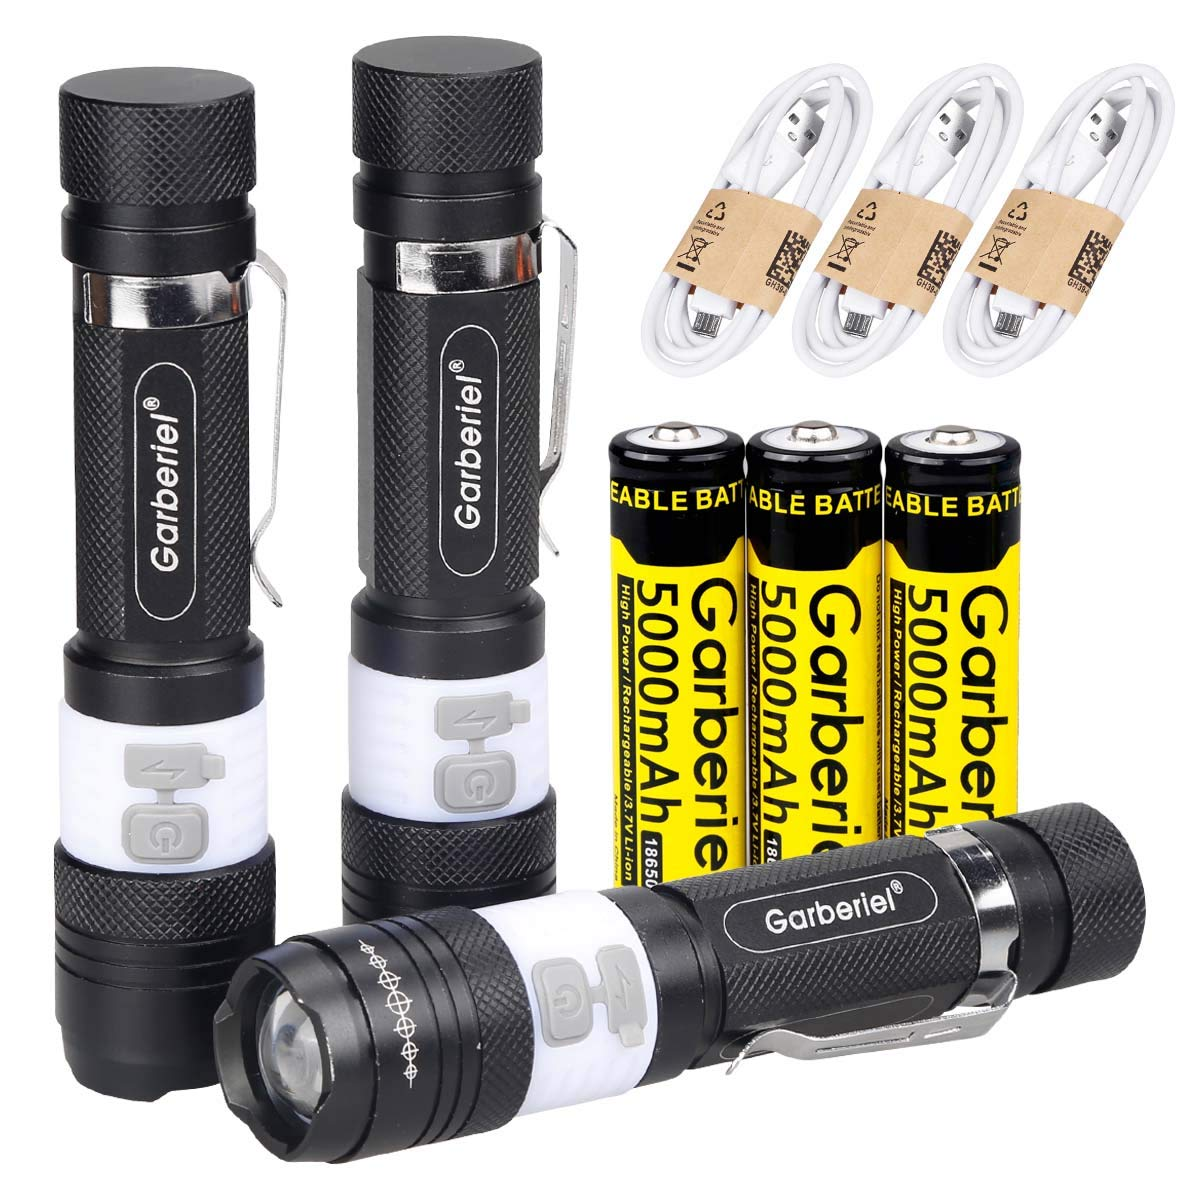 HeCloud 3 SETS USB 3 Modes LED Flashlight Torch USB Rechargeable with Battery and USB Cable